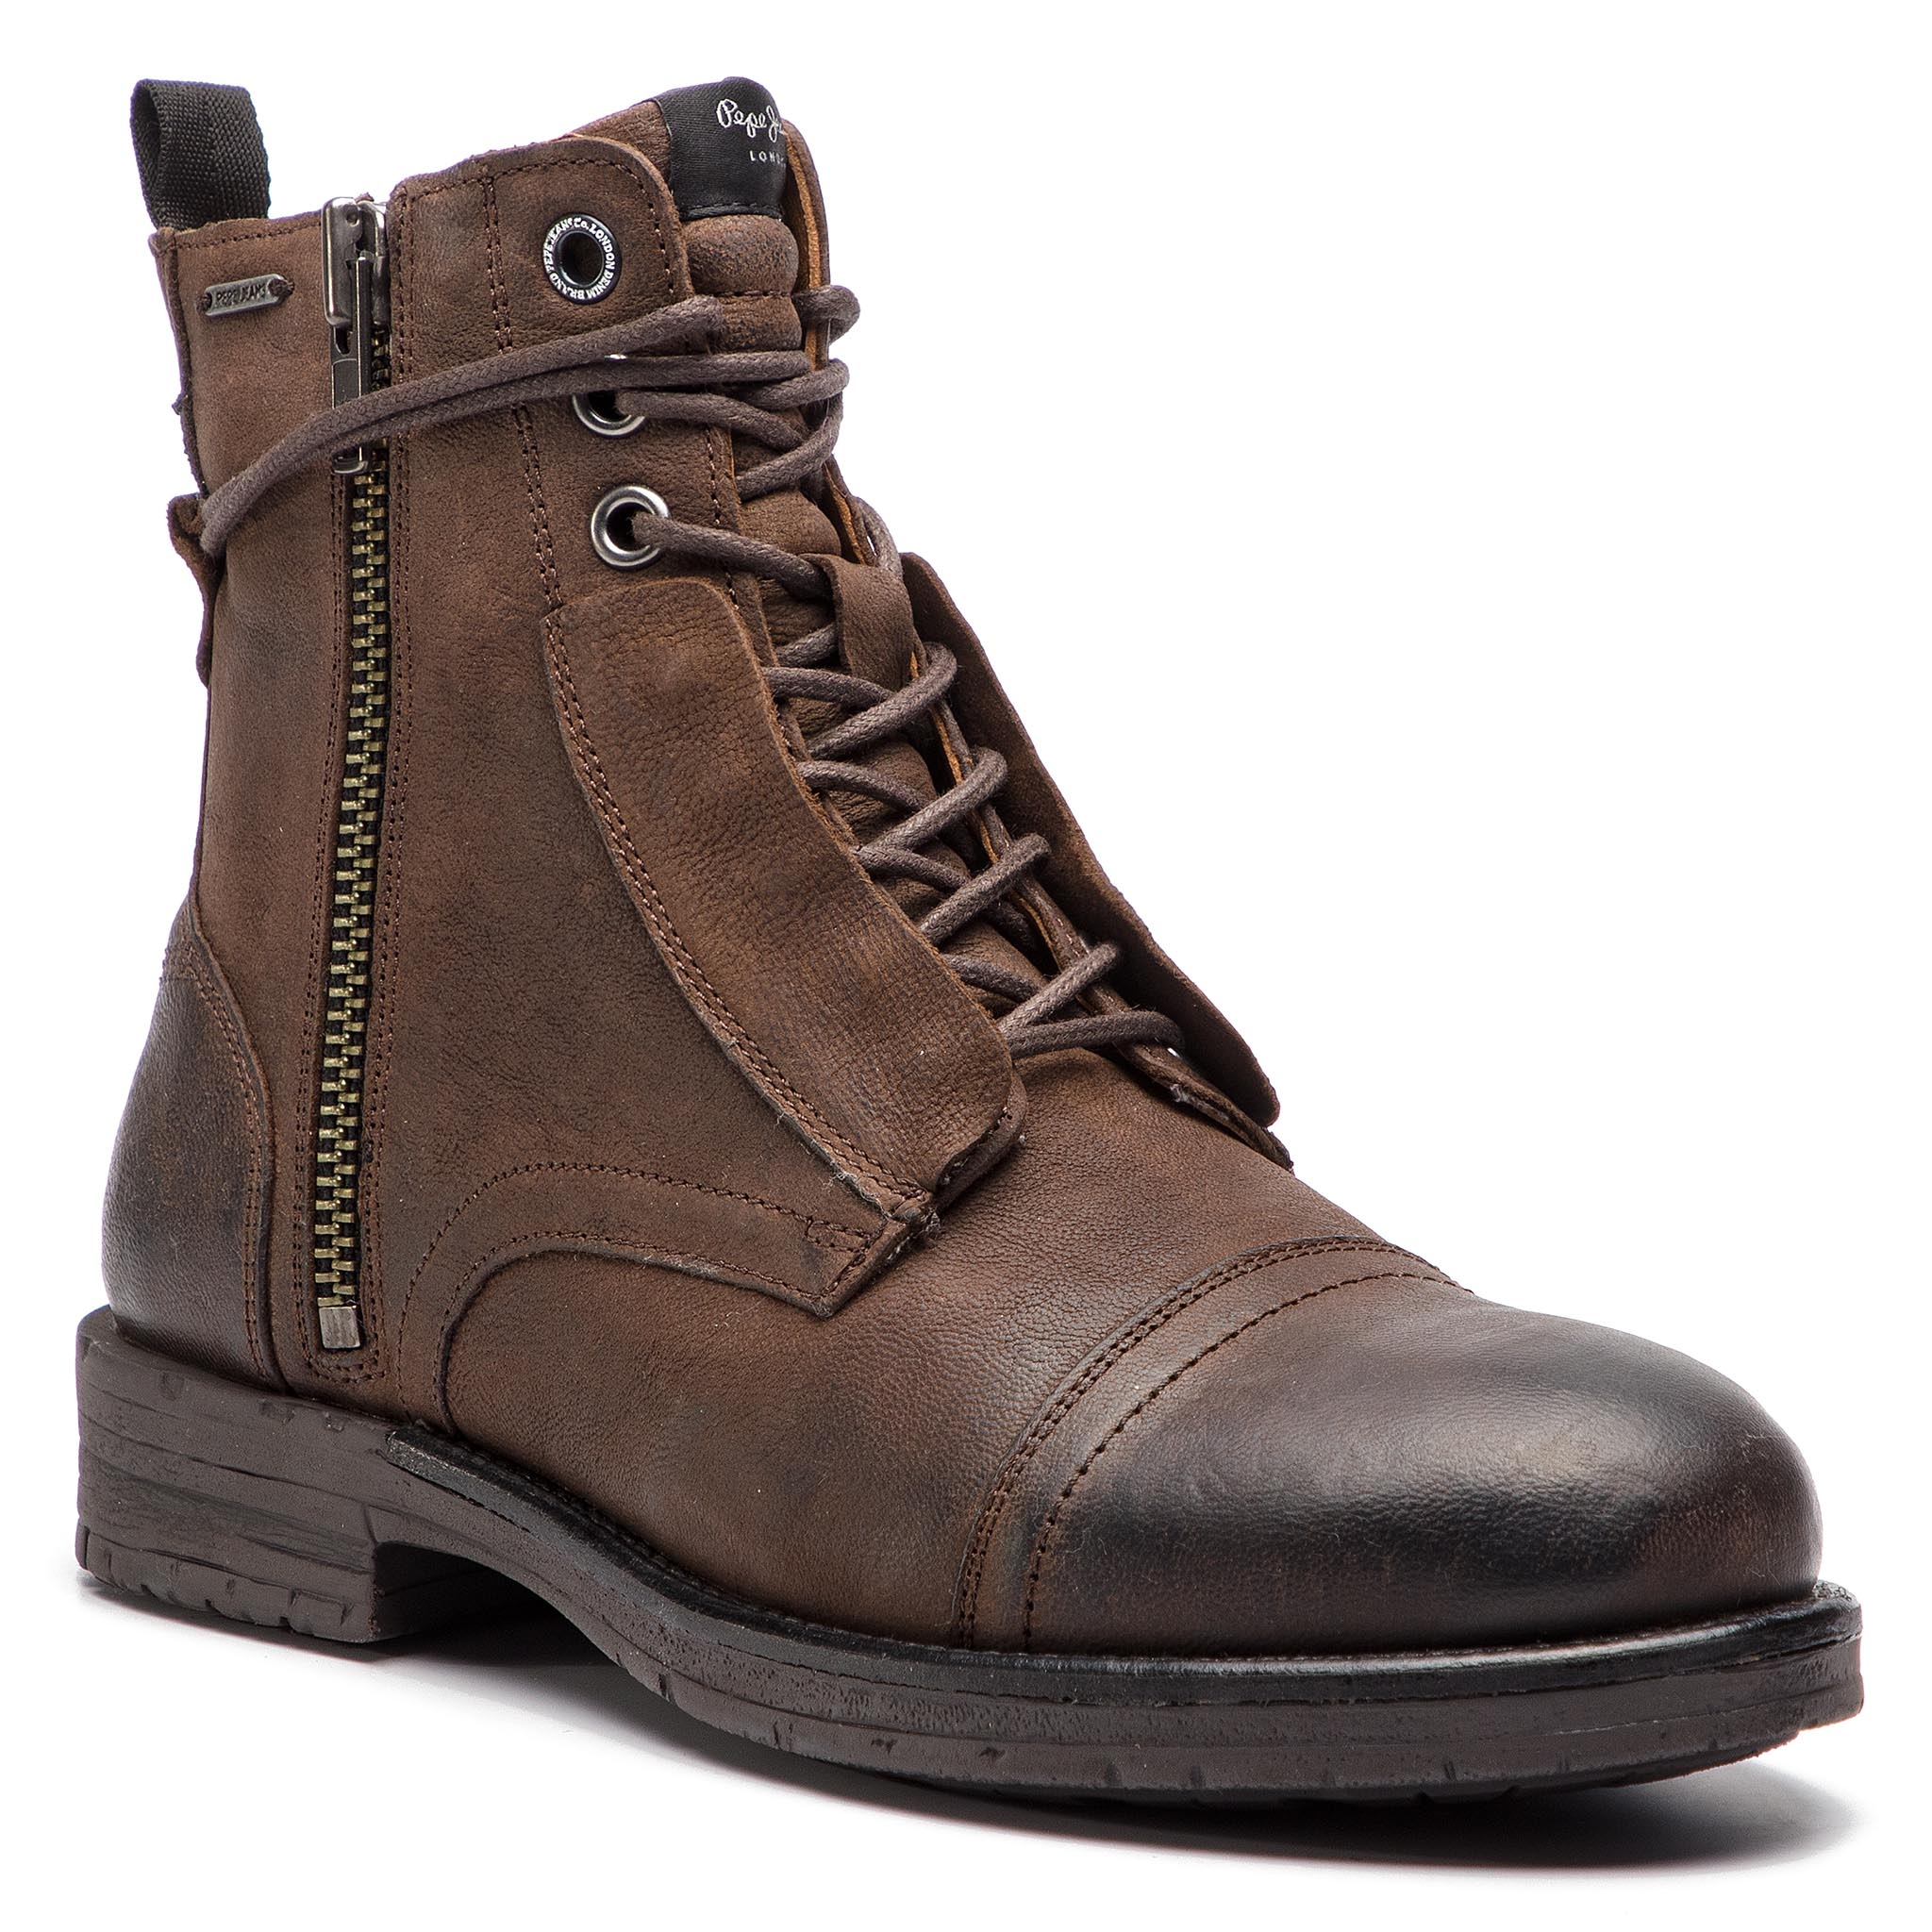 009919f4d1 Epapoutsia Μποτες PEPE JEANS - Tom Cut Boot PMS50162 Stag 884